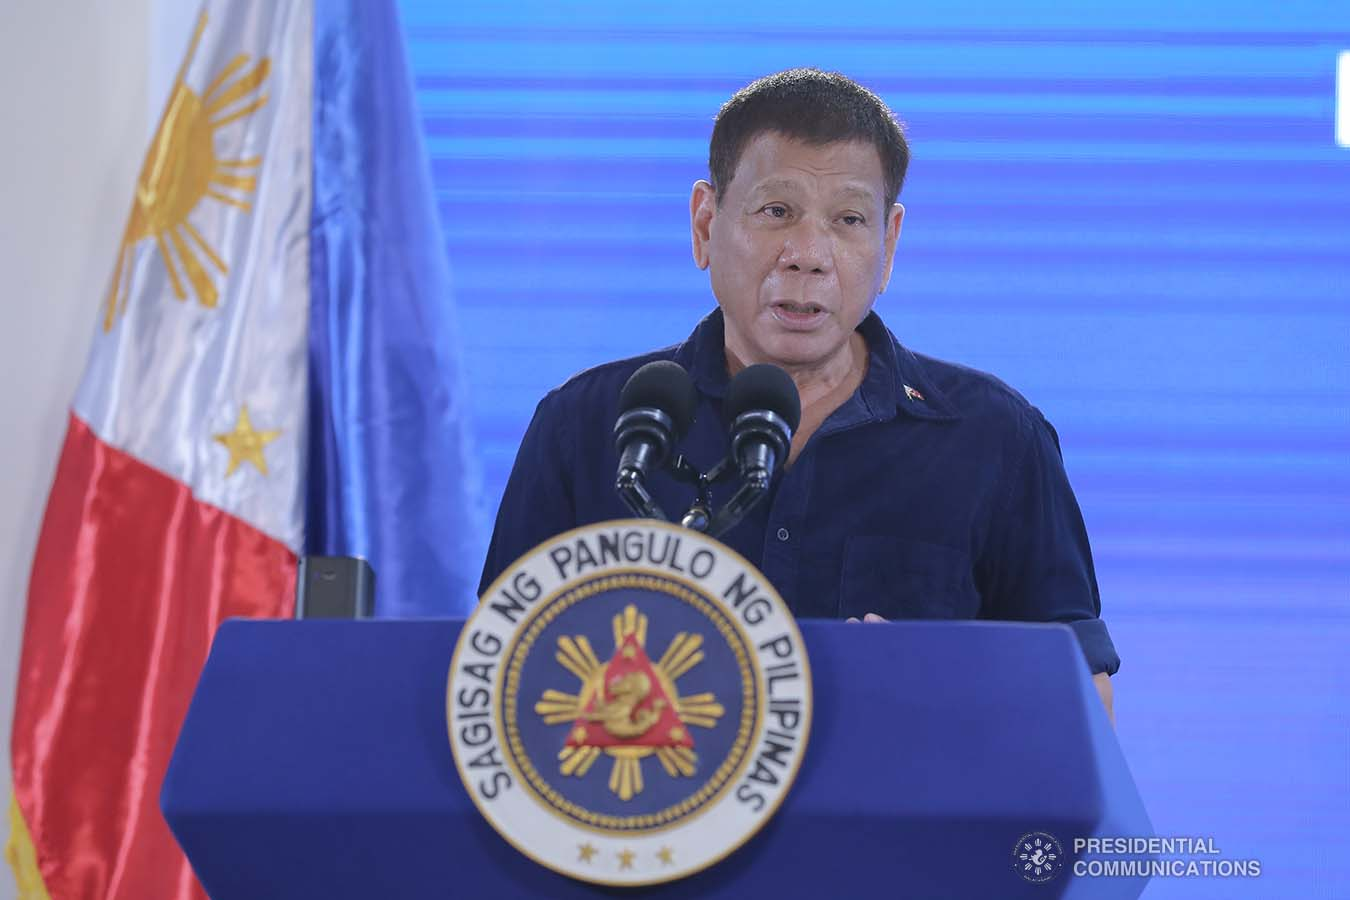 President Rodrigo Roa Duterte delivers his speech during the inauguration of the development projects at Dumaguete (Sibulan) Airport in Sibulan, Negros Oriental on March 11, 2021. VALERIE ESCALERA/ PRESIDENTIAL PHOTO